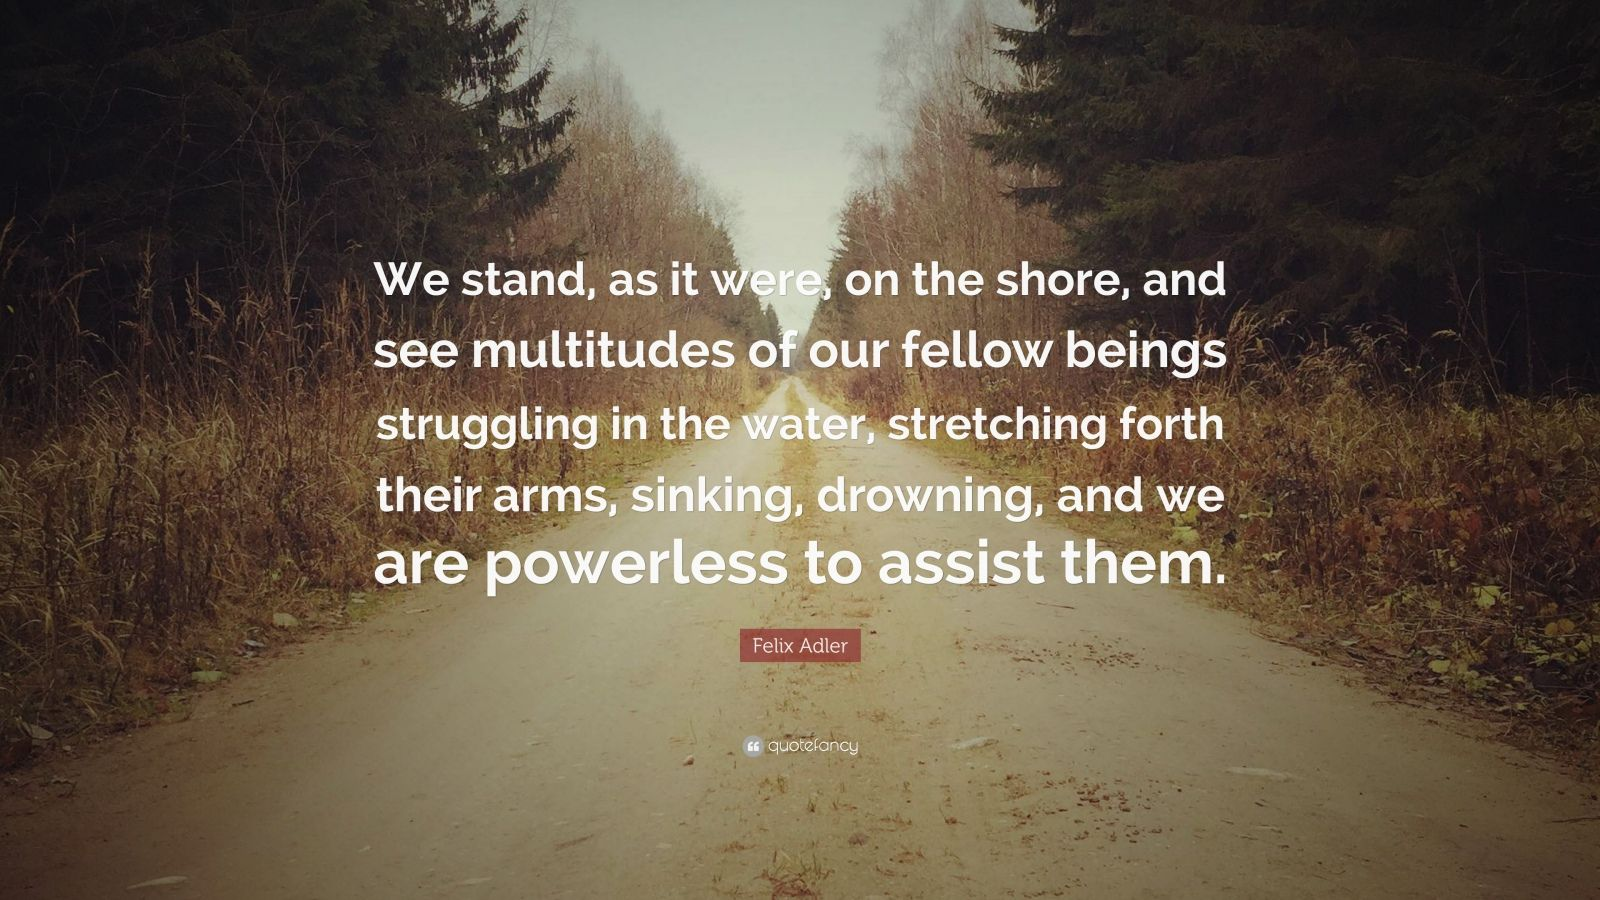 """Felix Adler Quote: """"We stand, as it were, on the shore, and see multitudes of our fellow beings struggling in the water, stretching forth their arms, sinking, drowning, and we are powerless to assist them."""""""